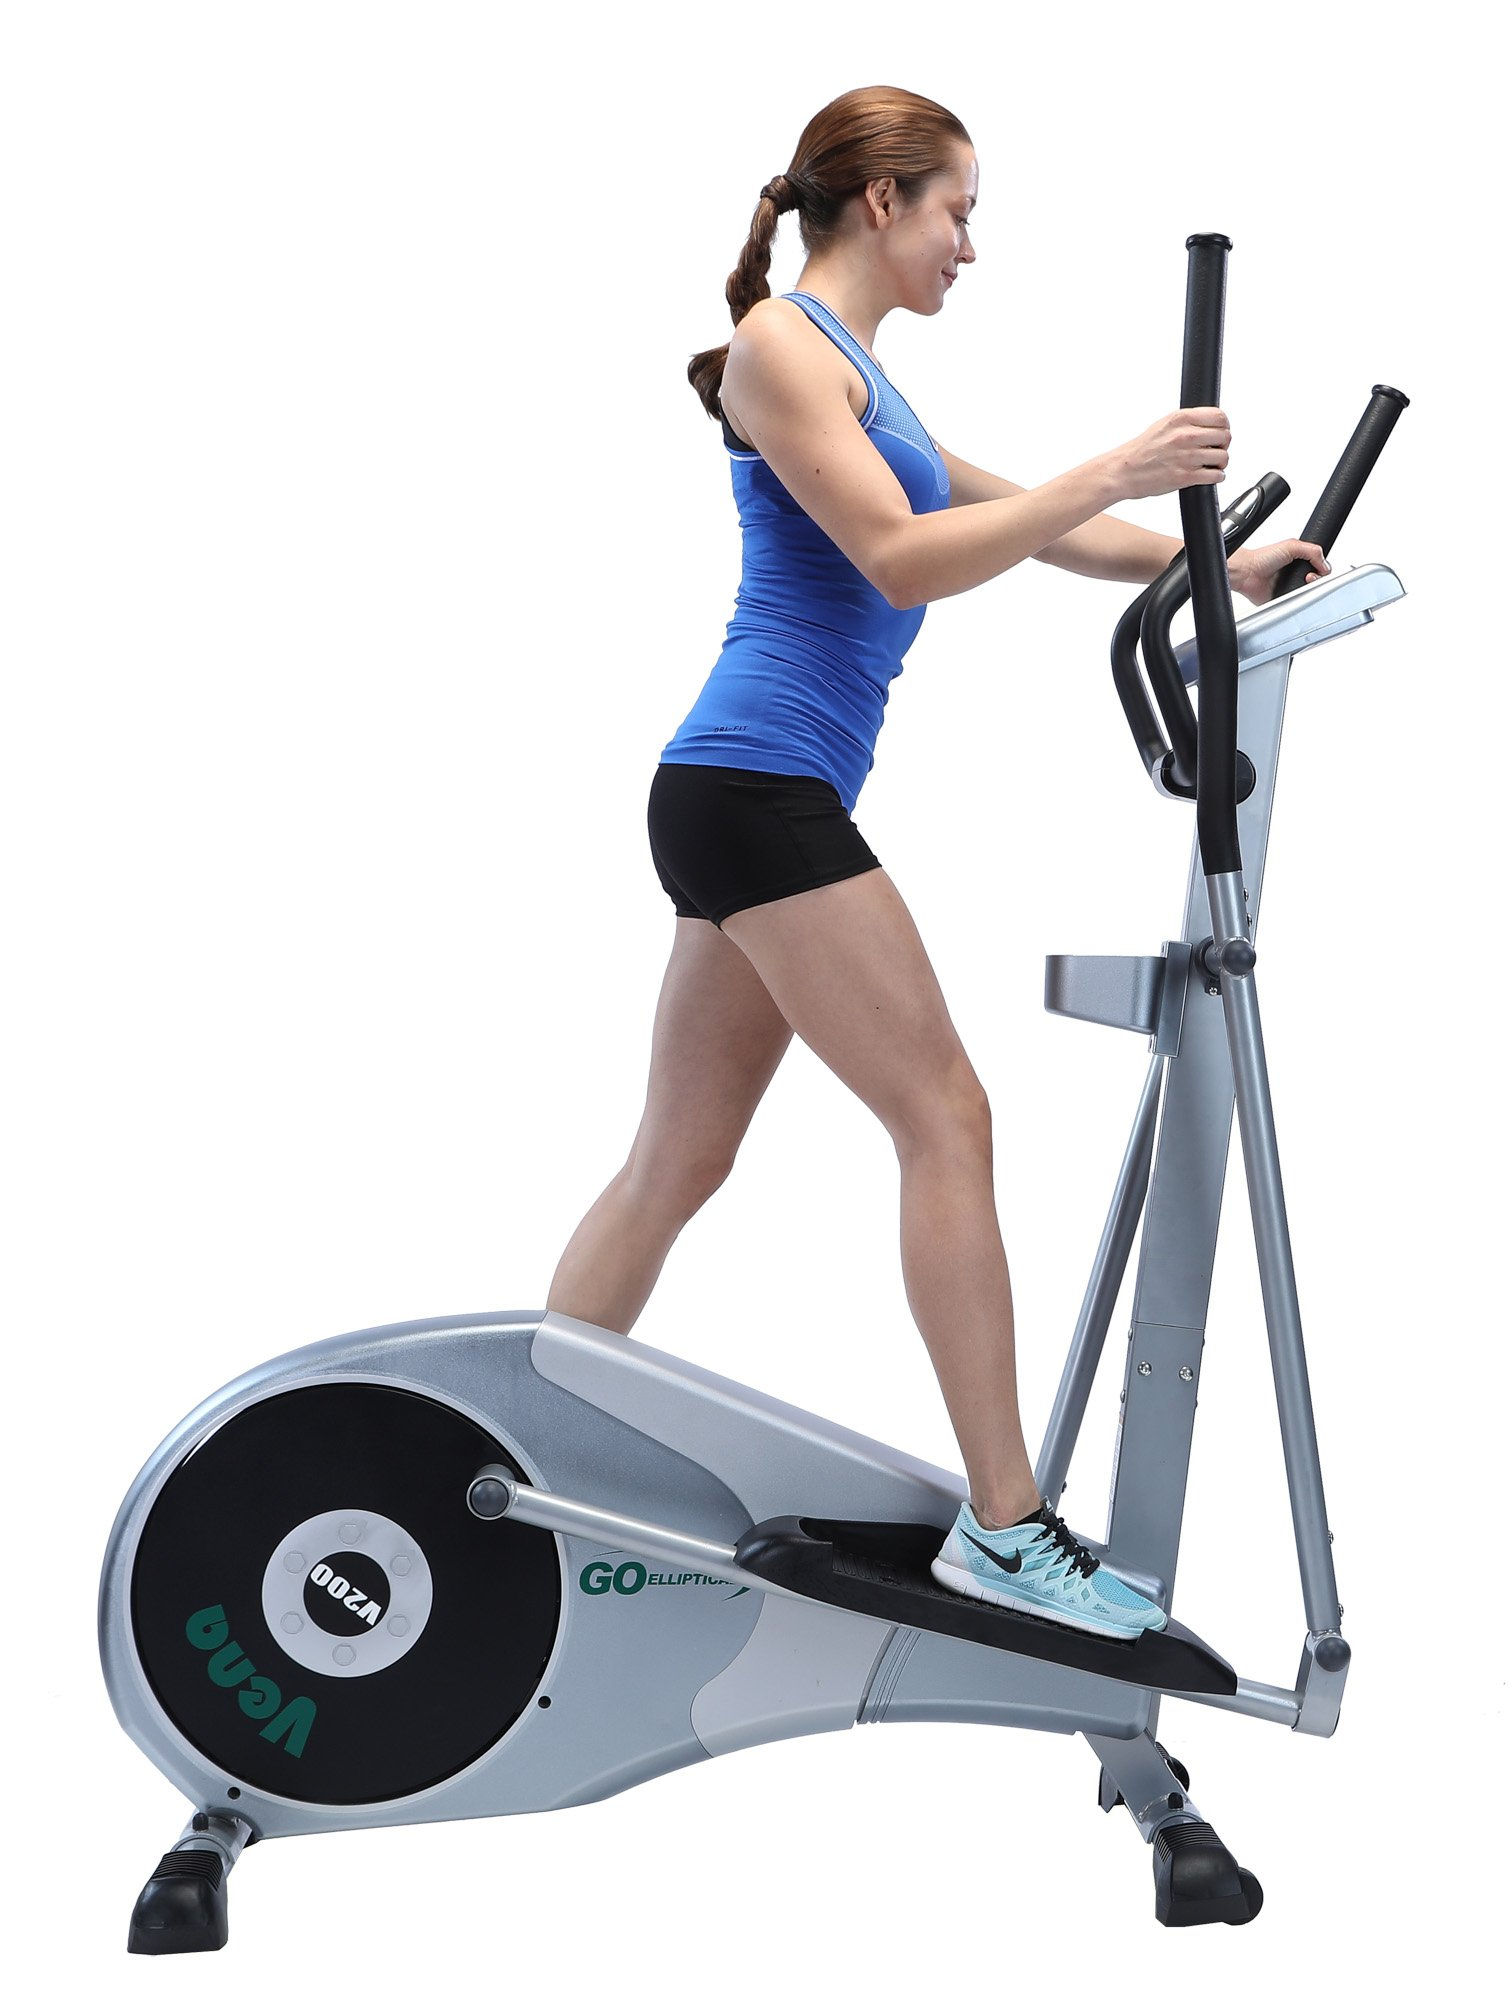 GOELLIPTICAL V-200 Stand Stride 17'' Elliptical Exercise Cross Trainer Machine for Cardio Fitness Strength Conditioning Workout at Home or Gym